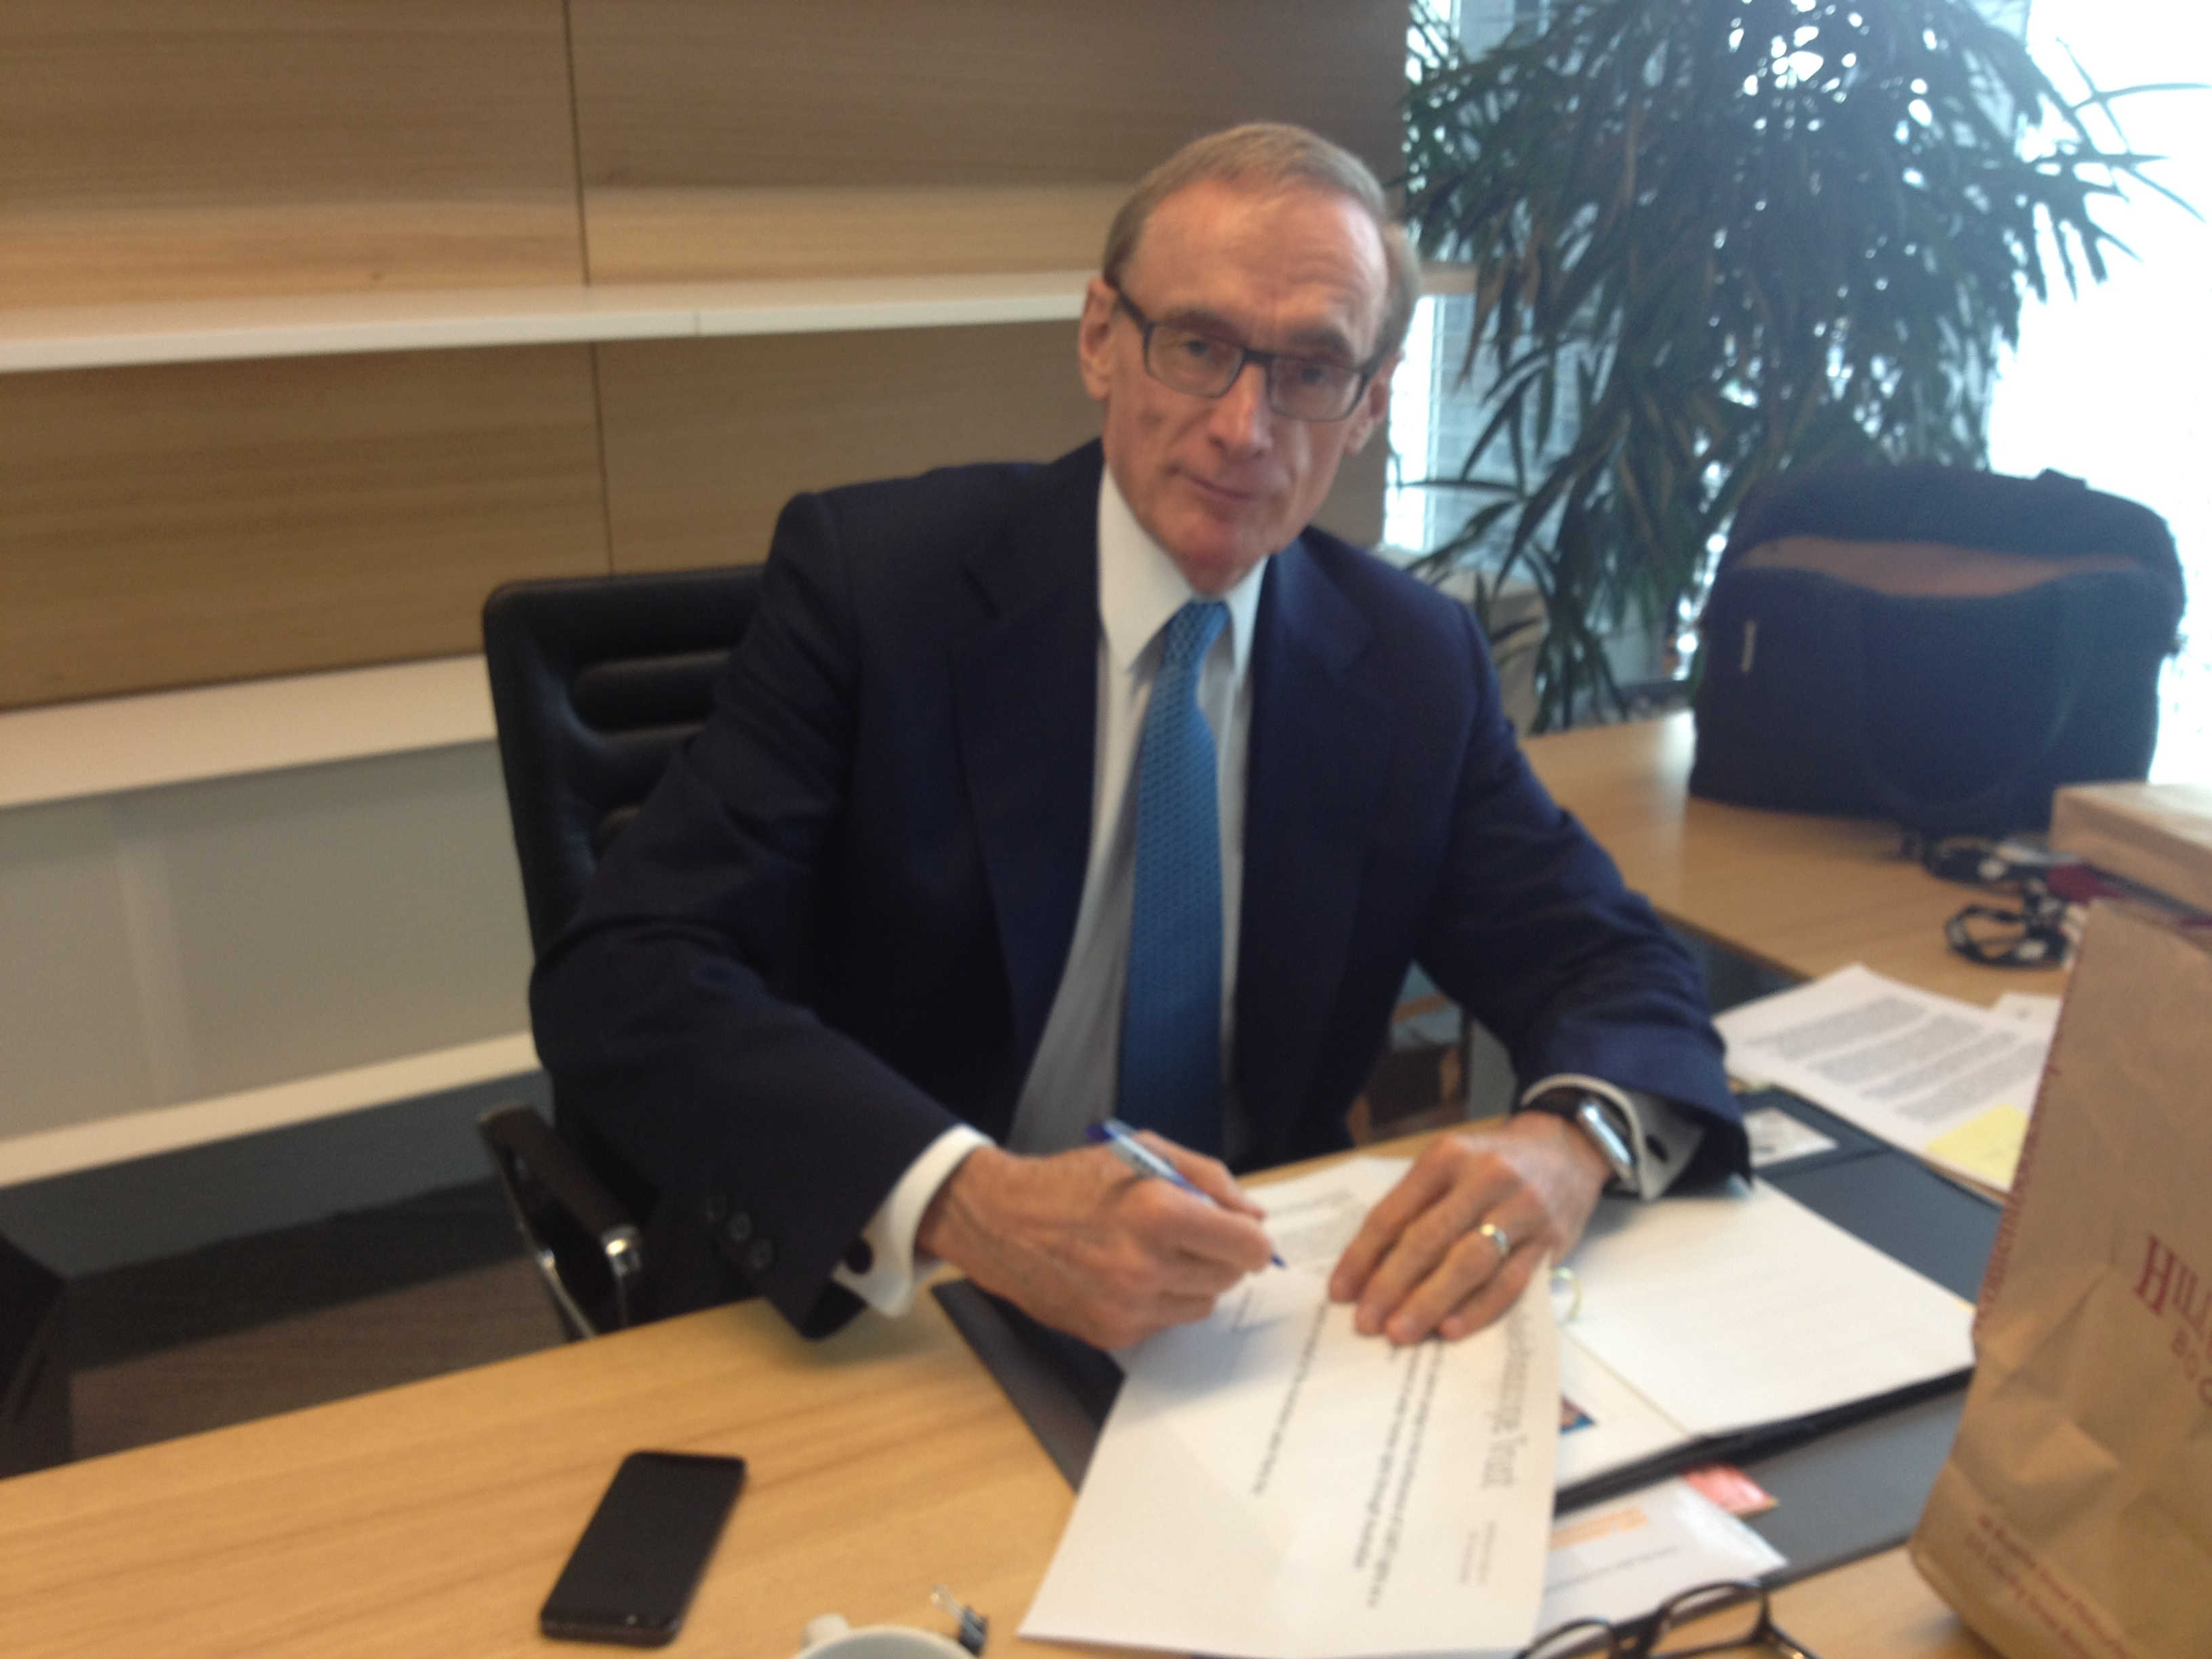 Bob Carr signing the pledge